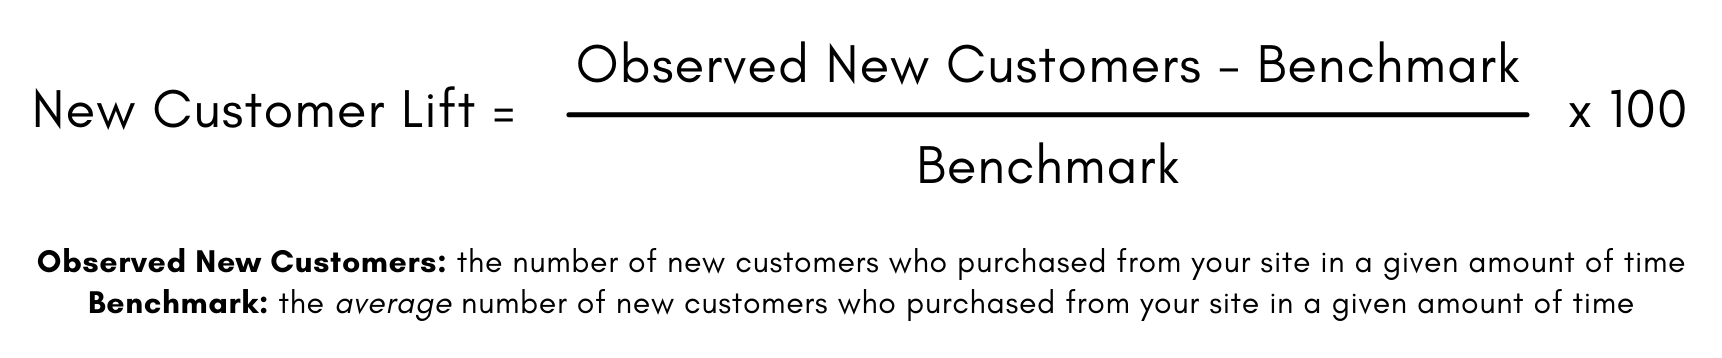 Formula for New Customer Lift: Number of New Customers minus the benchmark, divided by the benchmark, times 100.